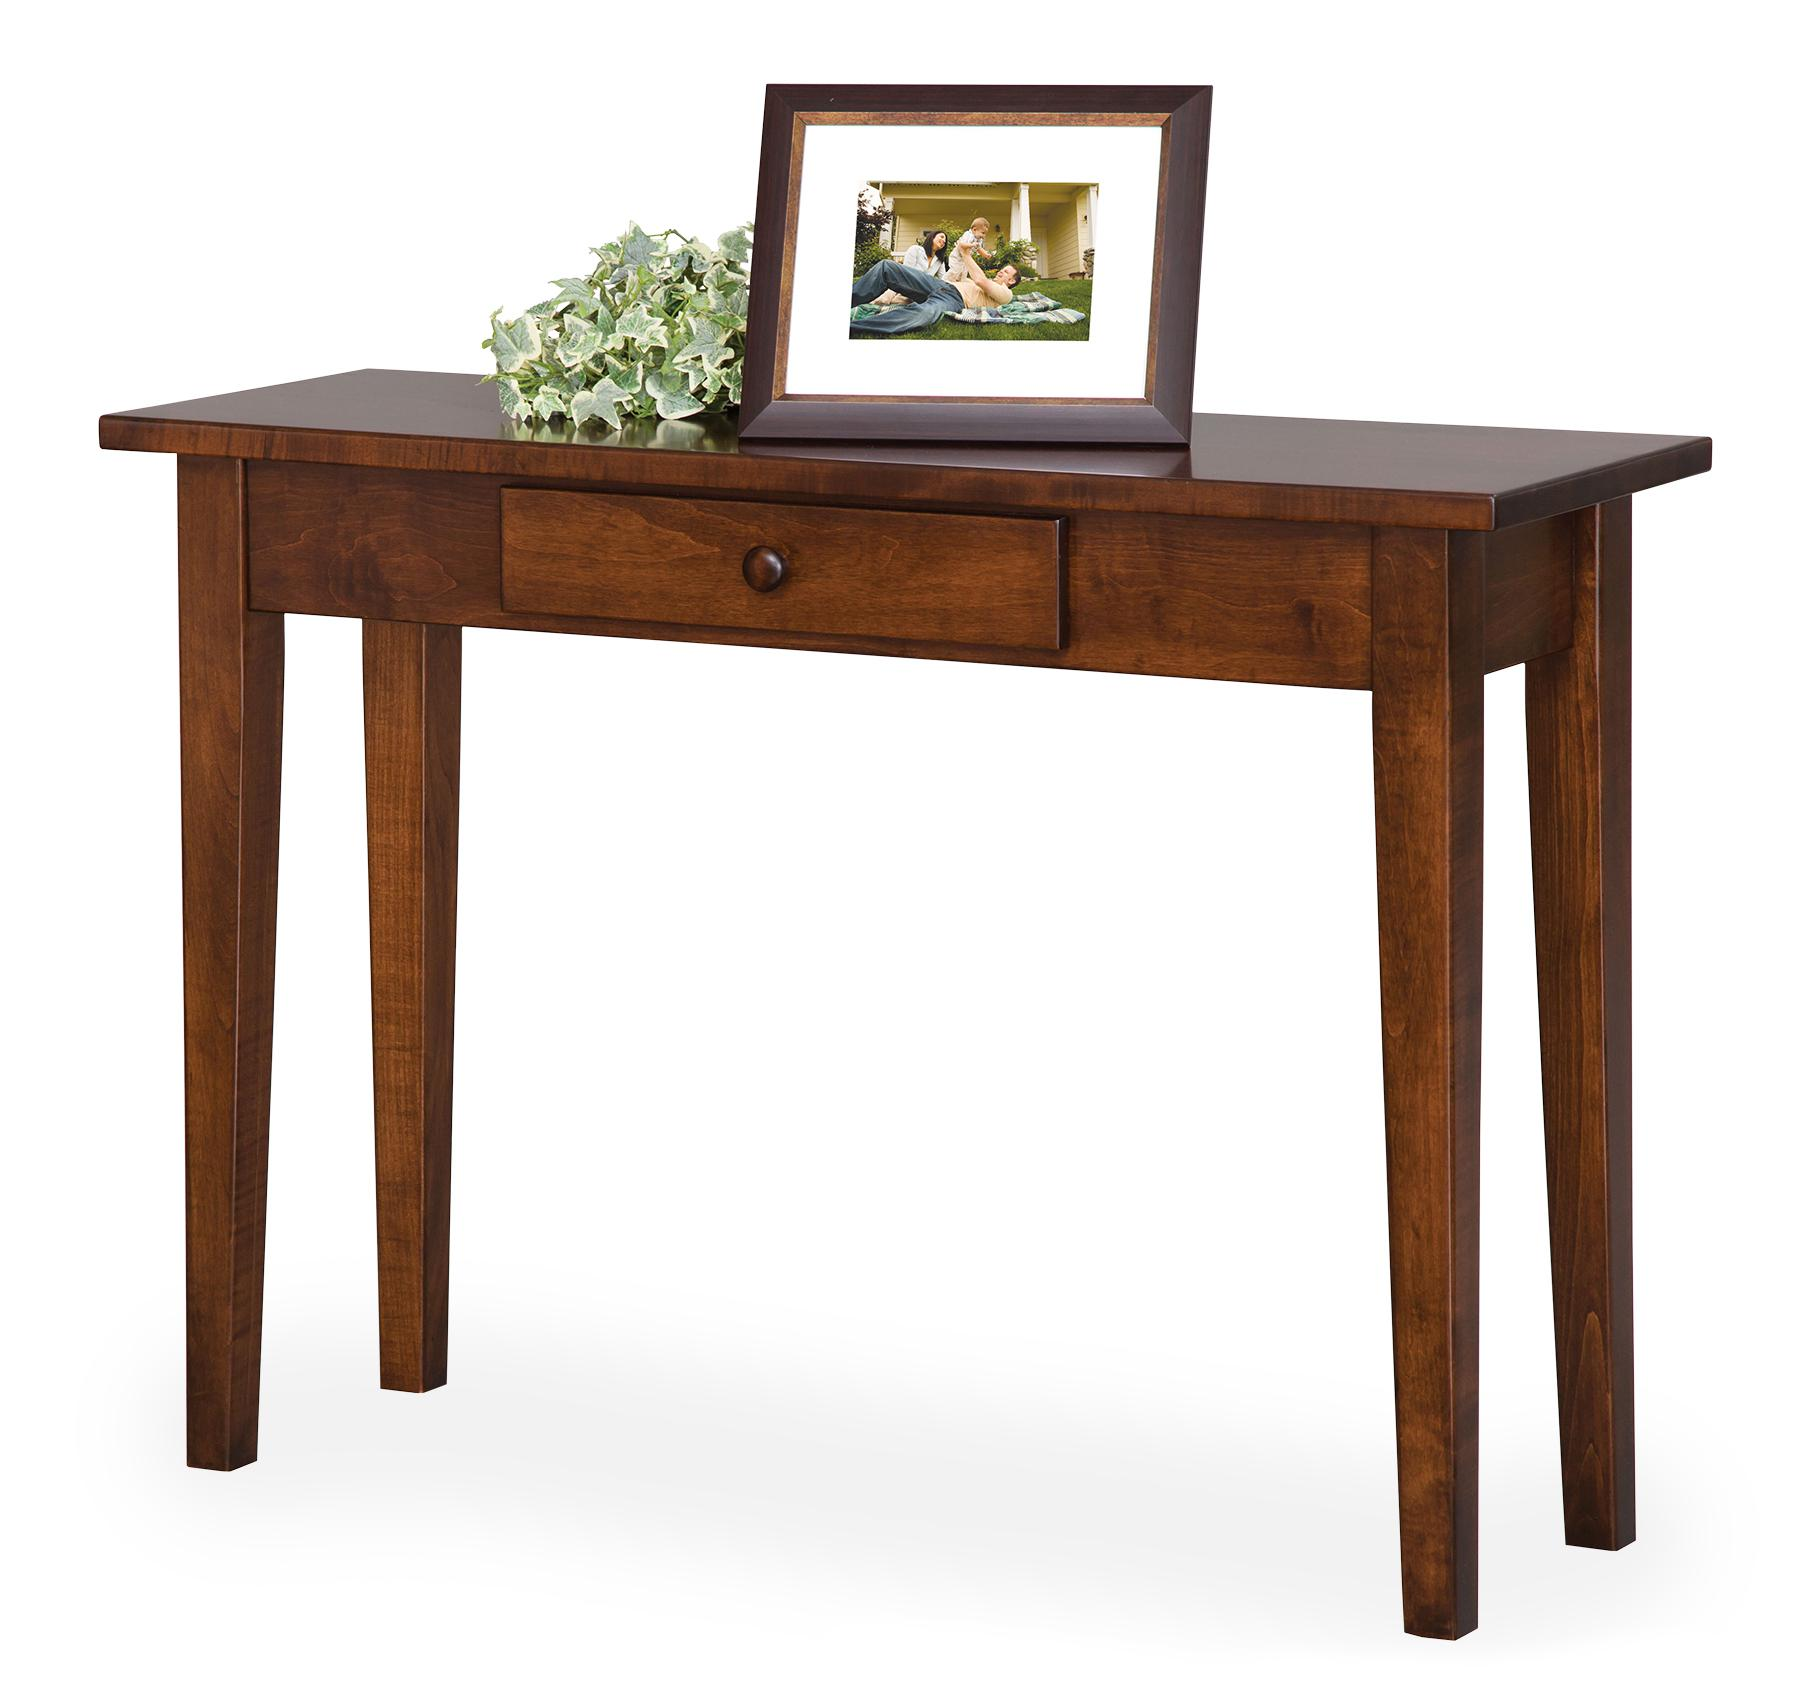 Shaker Petite Sofa Table with Drawer